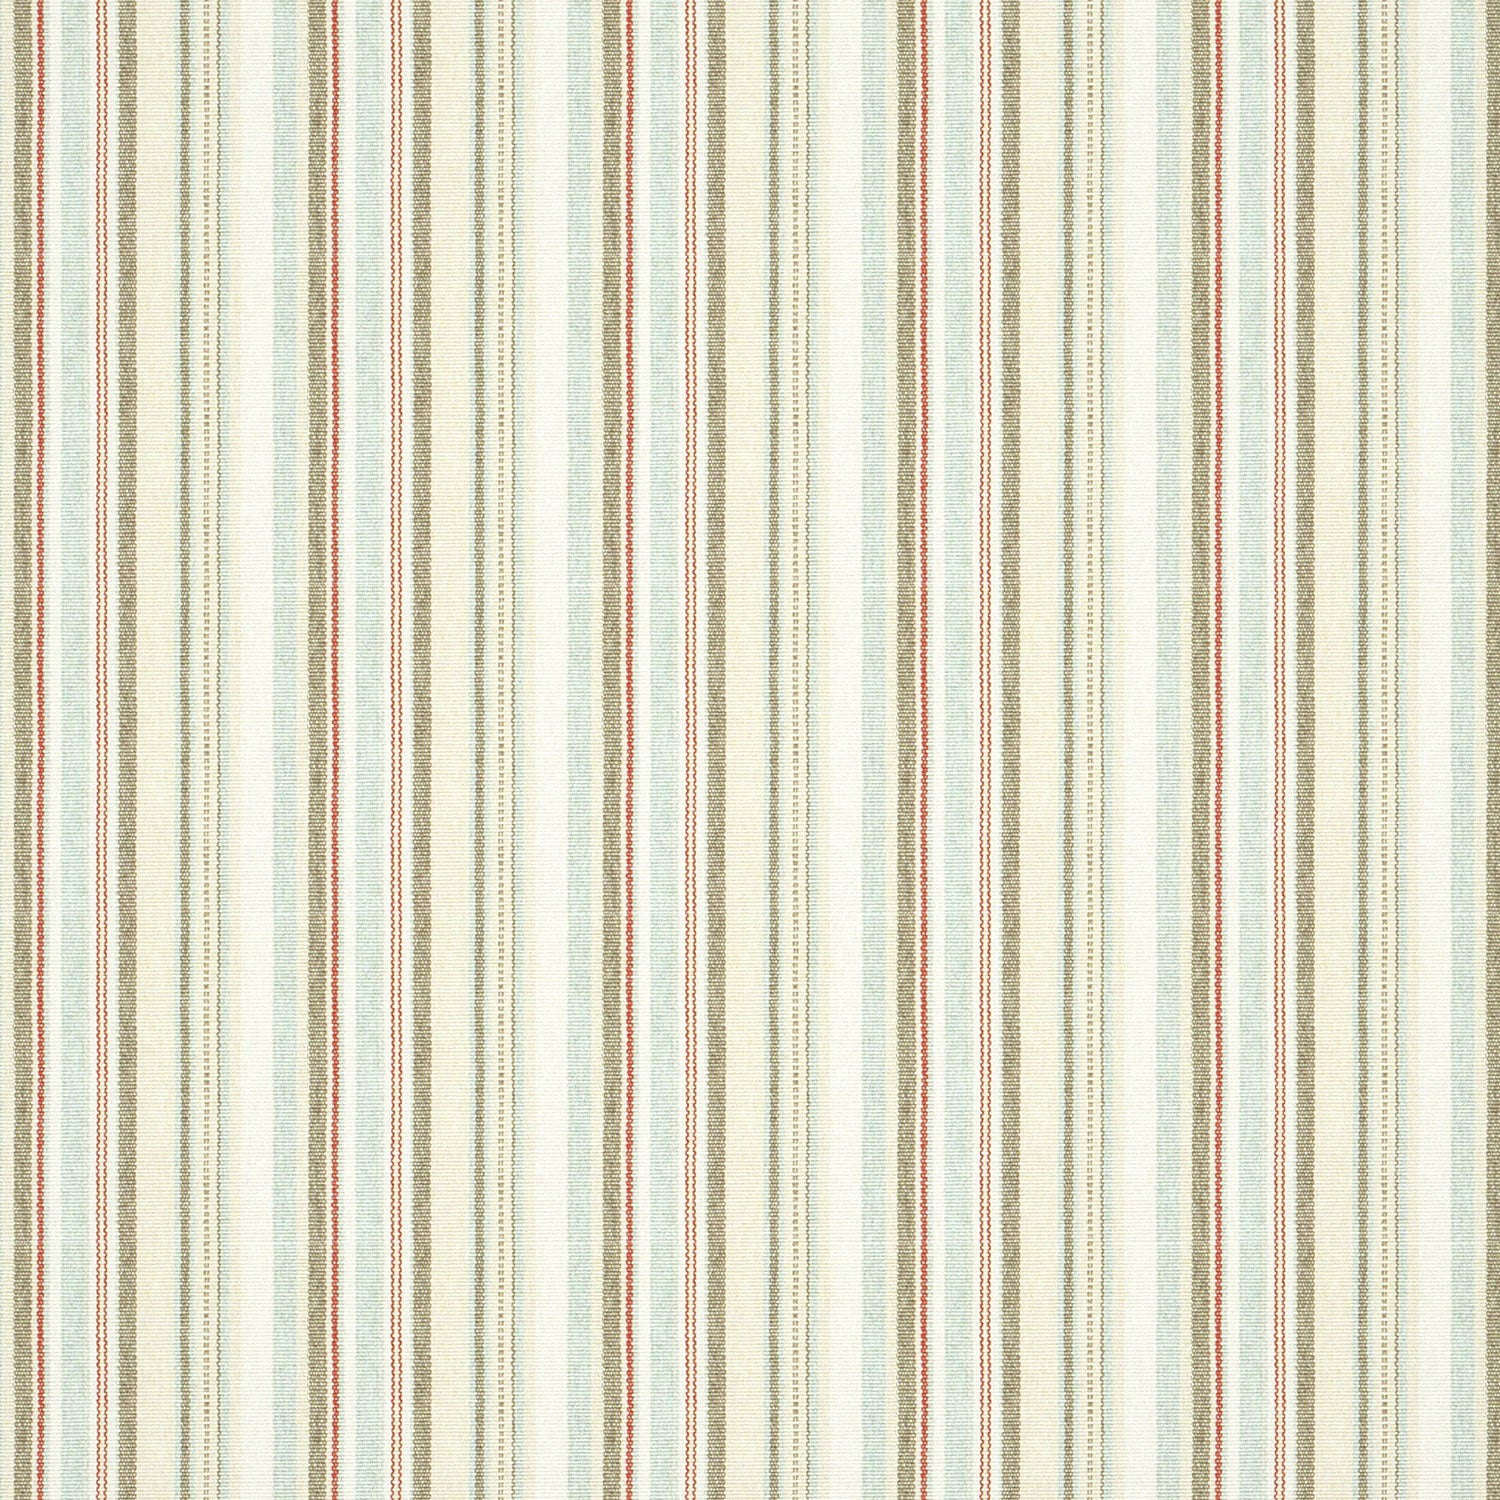 Cotton and linen blend fabric suitable for curtains and upholstery with neutral and baby blue stripes.